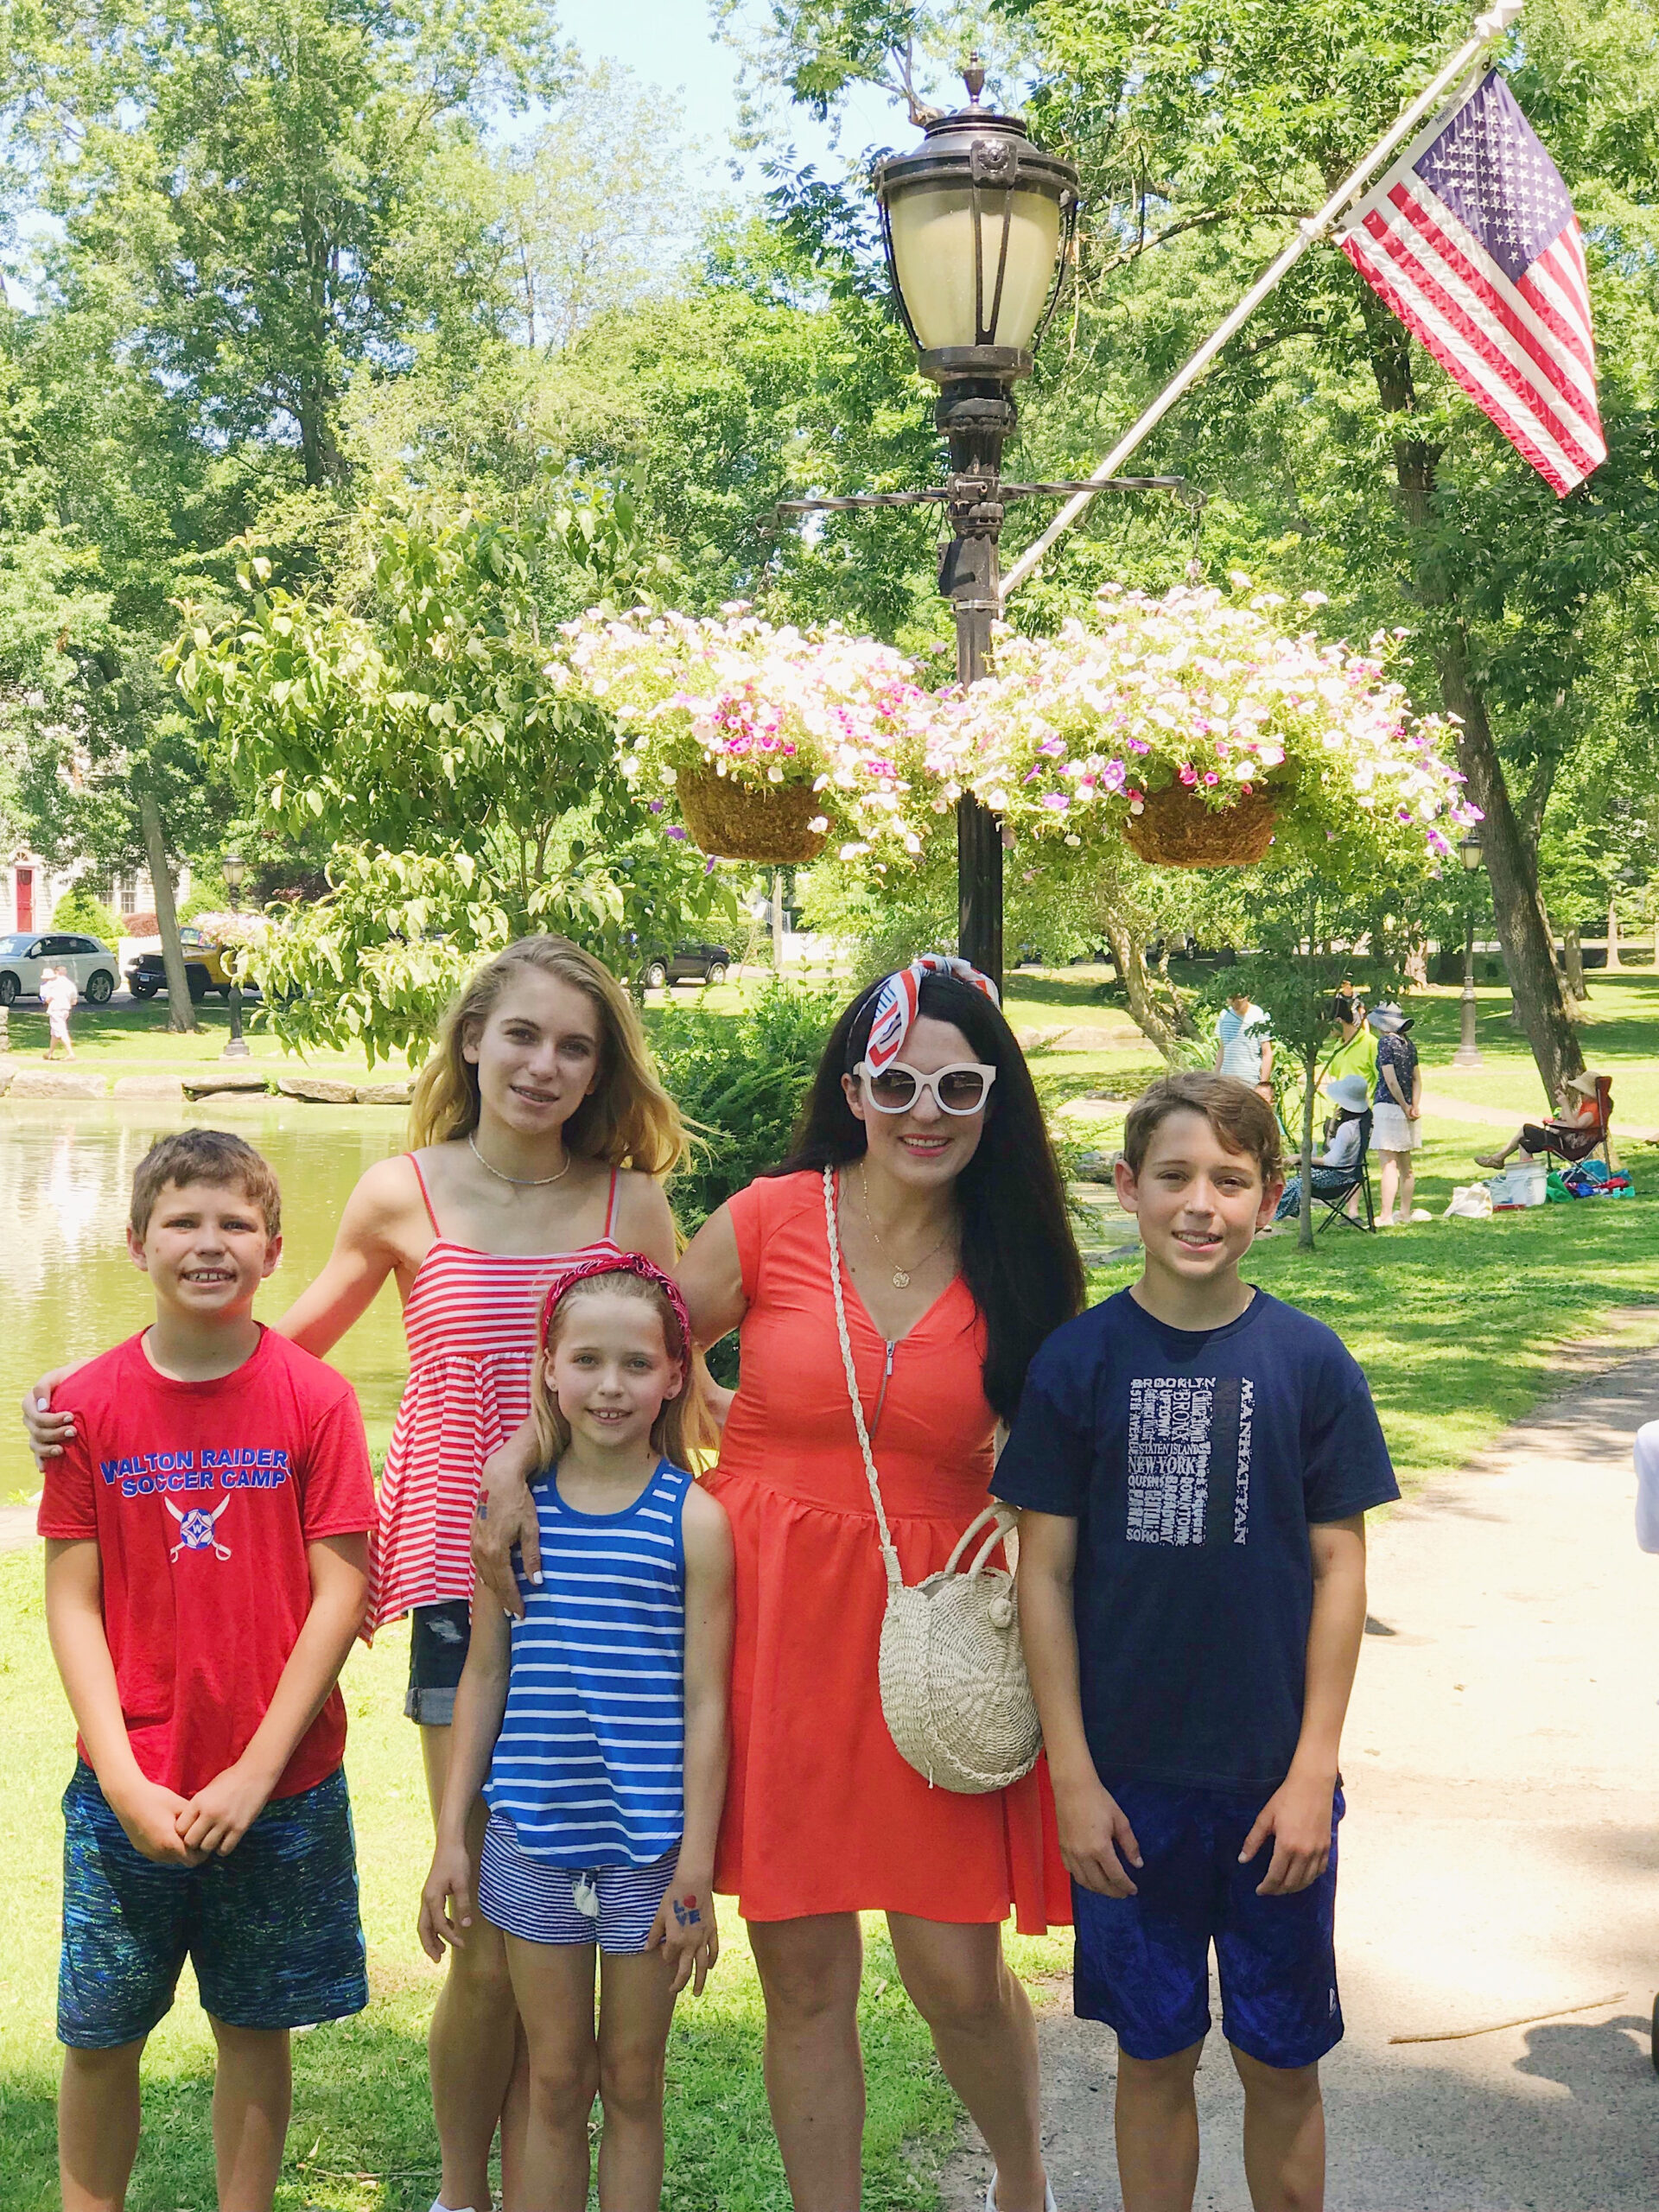 4th of July Outfit , fourth of July, red white and blue outfit, red dress, summer dress, patriotic dress, family 4th of July outfits || Darling Darleen Top Lifestyle CT Blogger  #4thofjuly #fourthofjuly